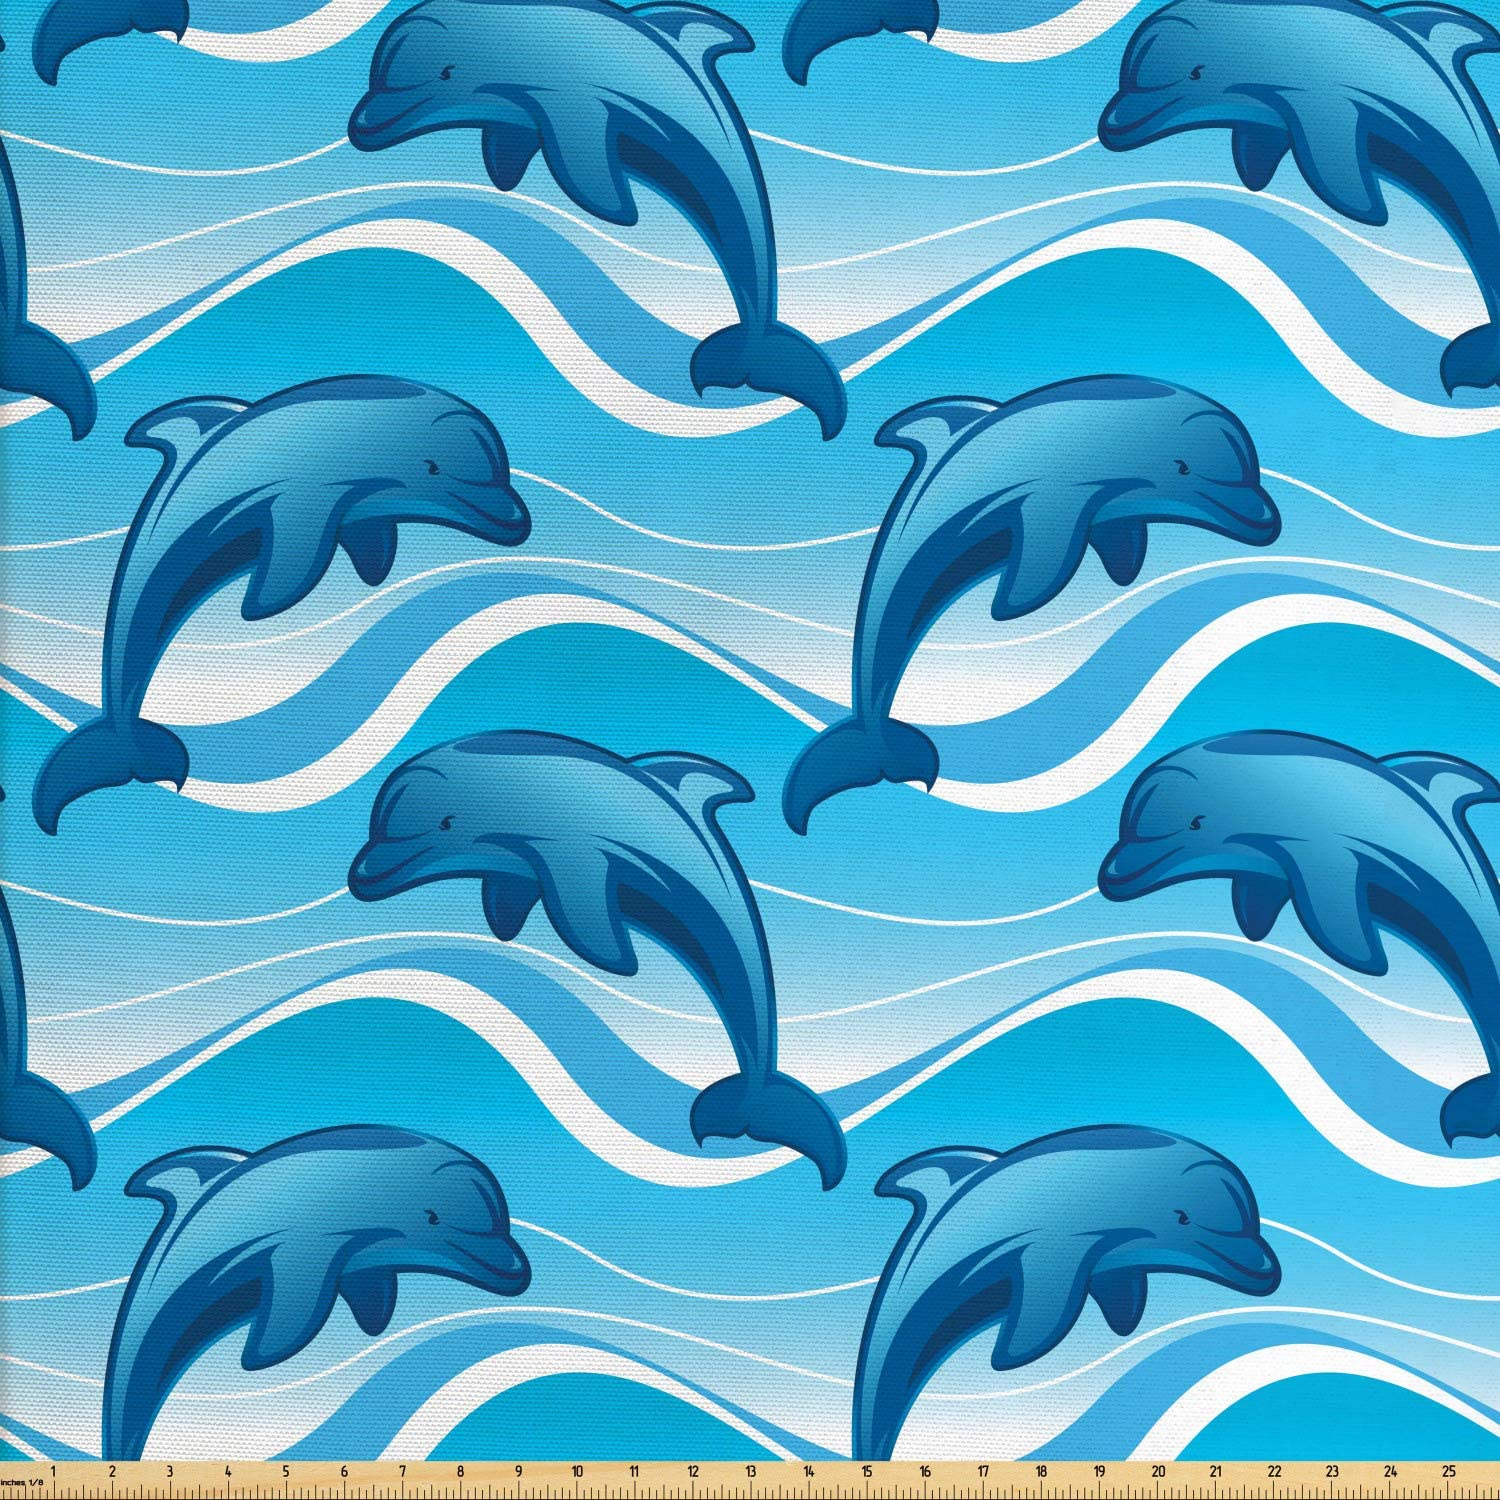 Lunarable Dolphin Fabric by The Yard, Dolphin Illustration Jumping Waves with Large Mammal Friendly Ocean Animal, Decorative Fabric for Upholstery and Home Accents, 2 Yards, Azure Blue